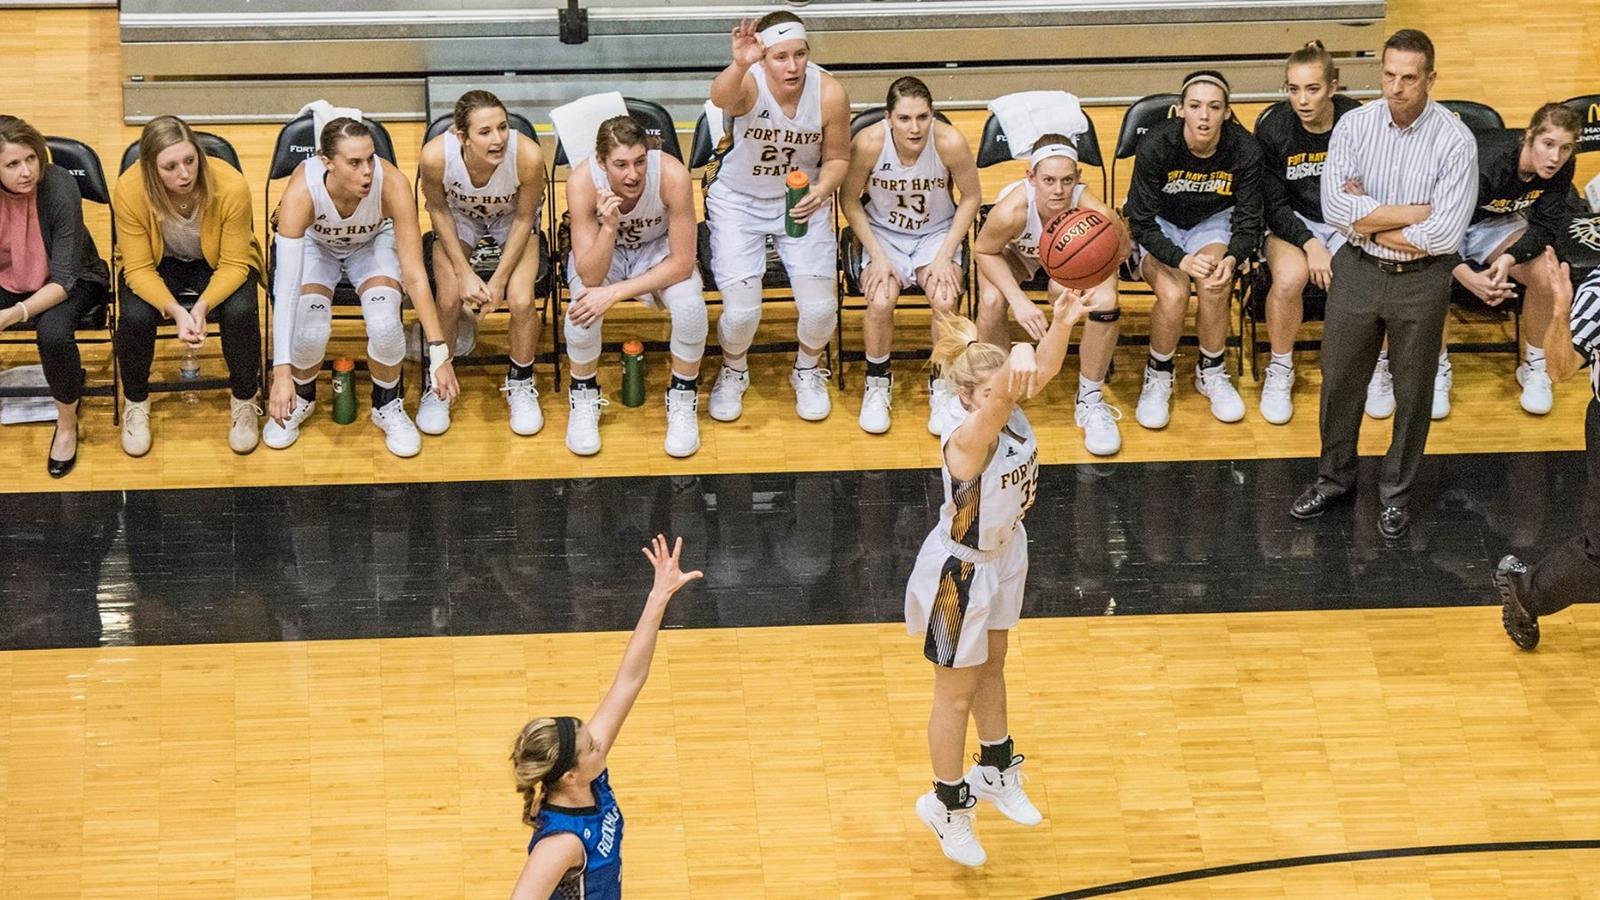 Fort Hays State opens the second half of the DII women's basketball season against three top 25 teams.